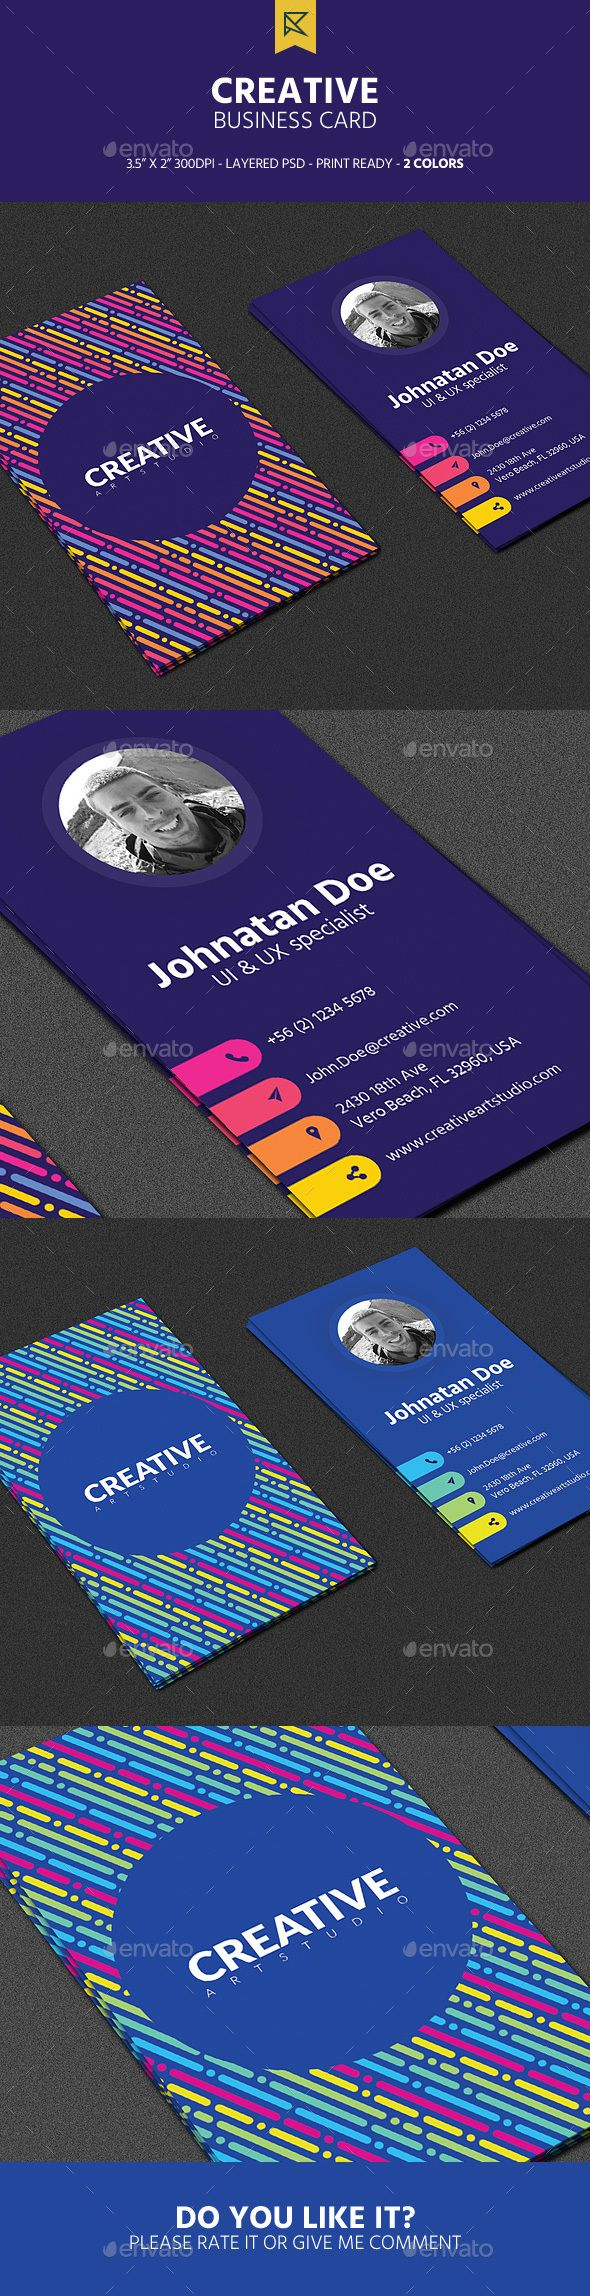 82 best business cards 2018 images on pinterest business cards creative vertical business card cheaphphosting Images